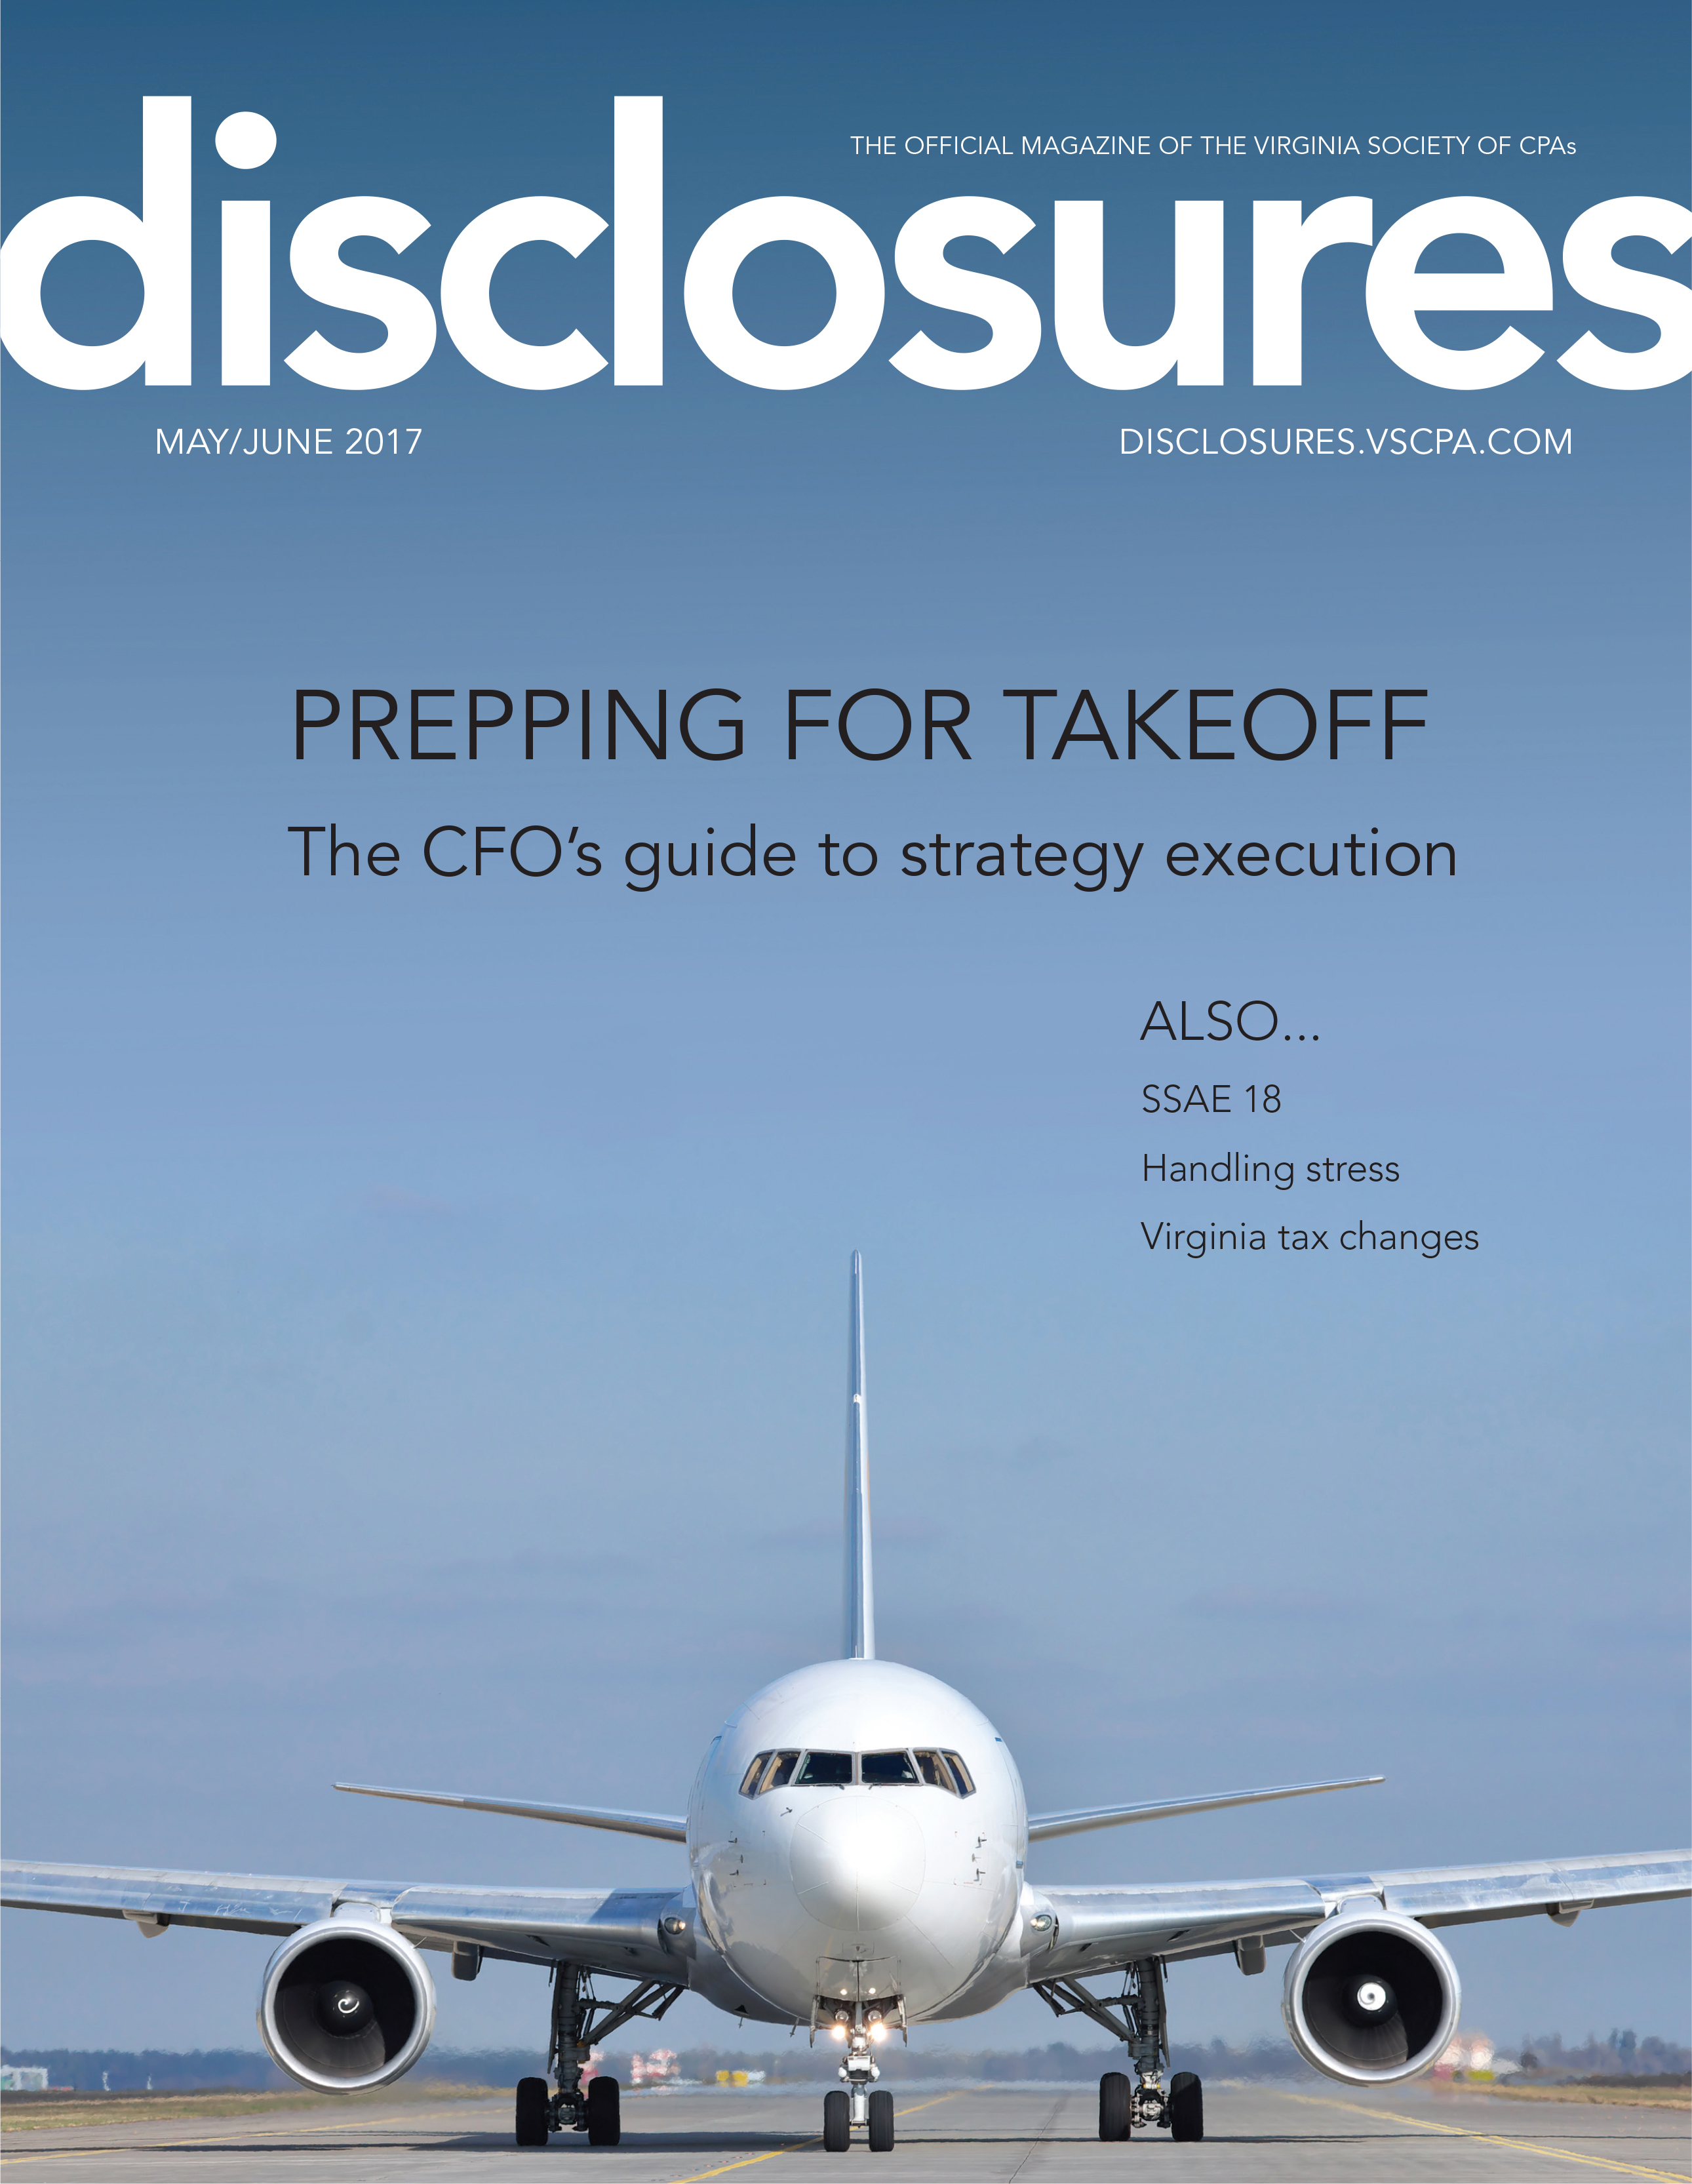 Cover of May/June 2017 issue of Disclosures